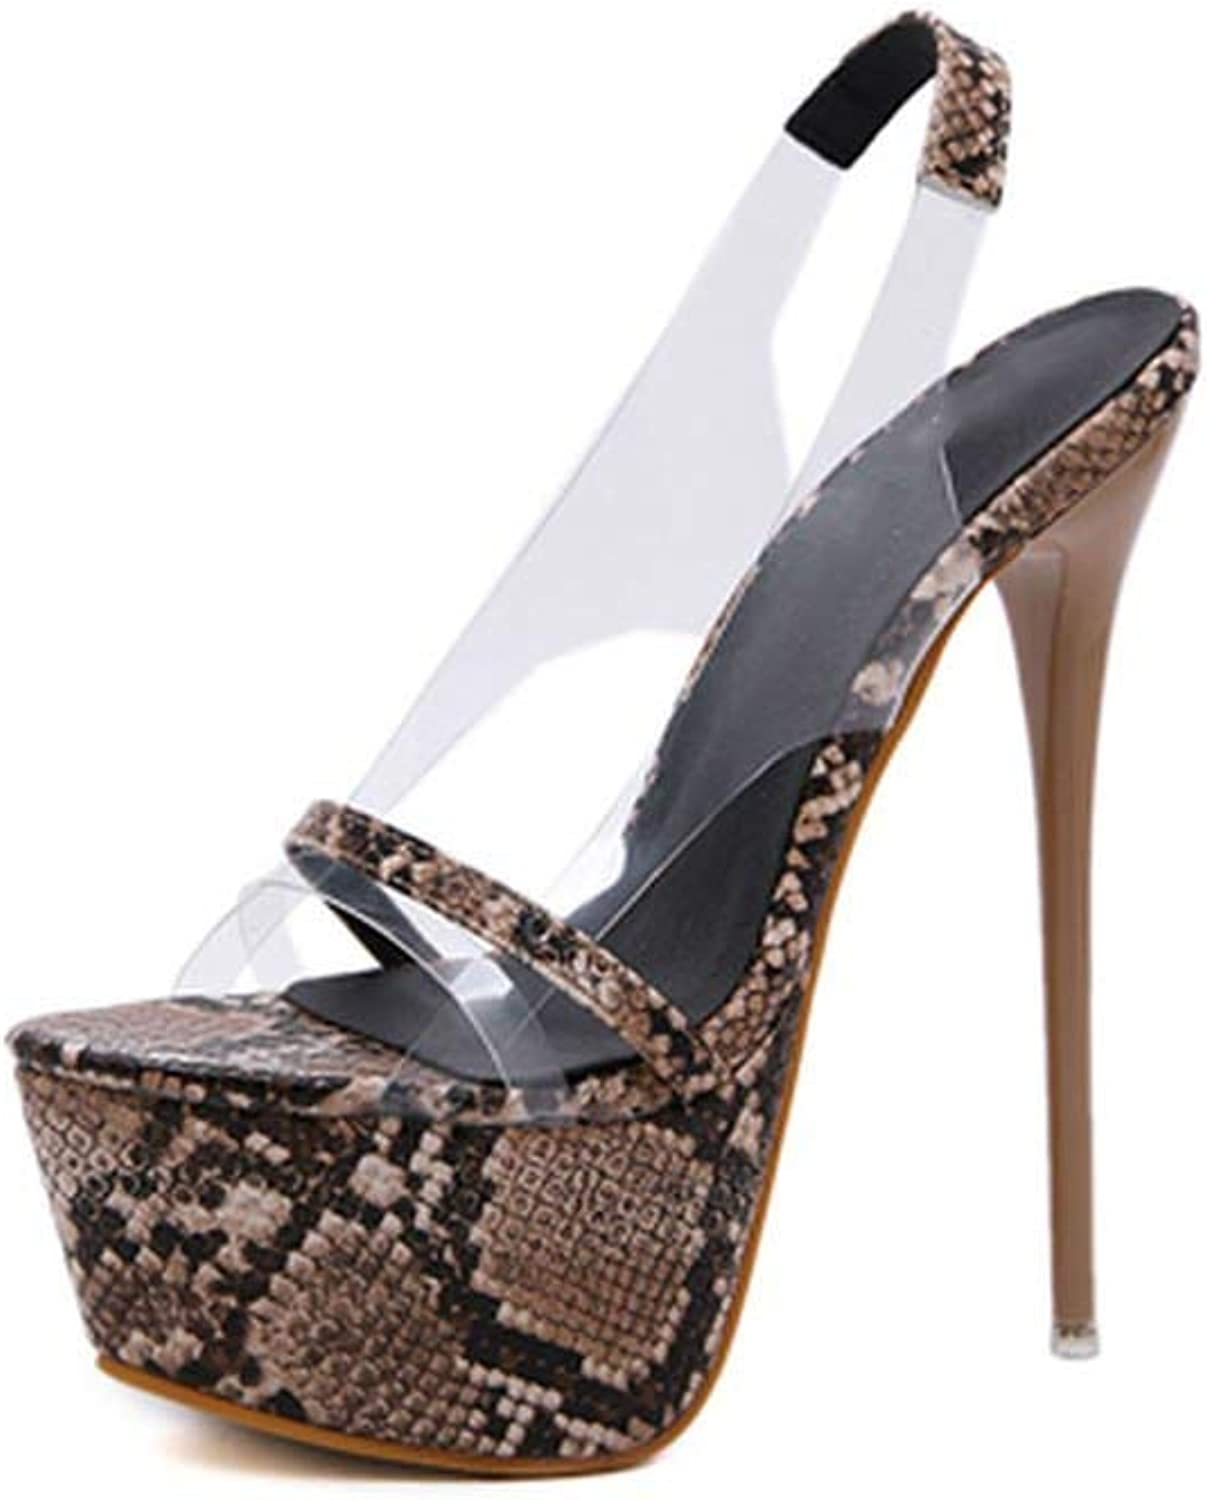 Lewis Pitman High Heel Sandals 17Cm Thin Heel Platform Sandals Sexy Transparent PVC Women Heels Party shoes